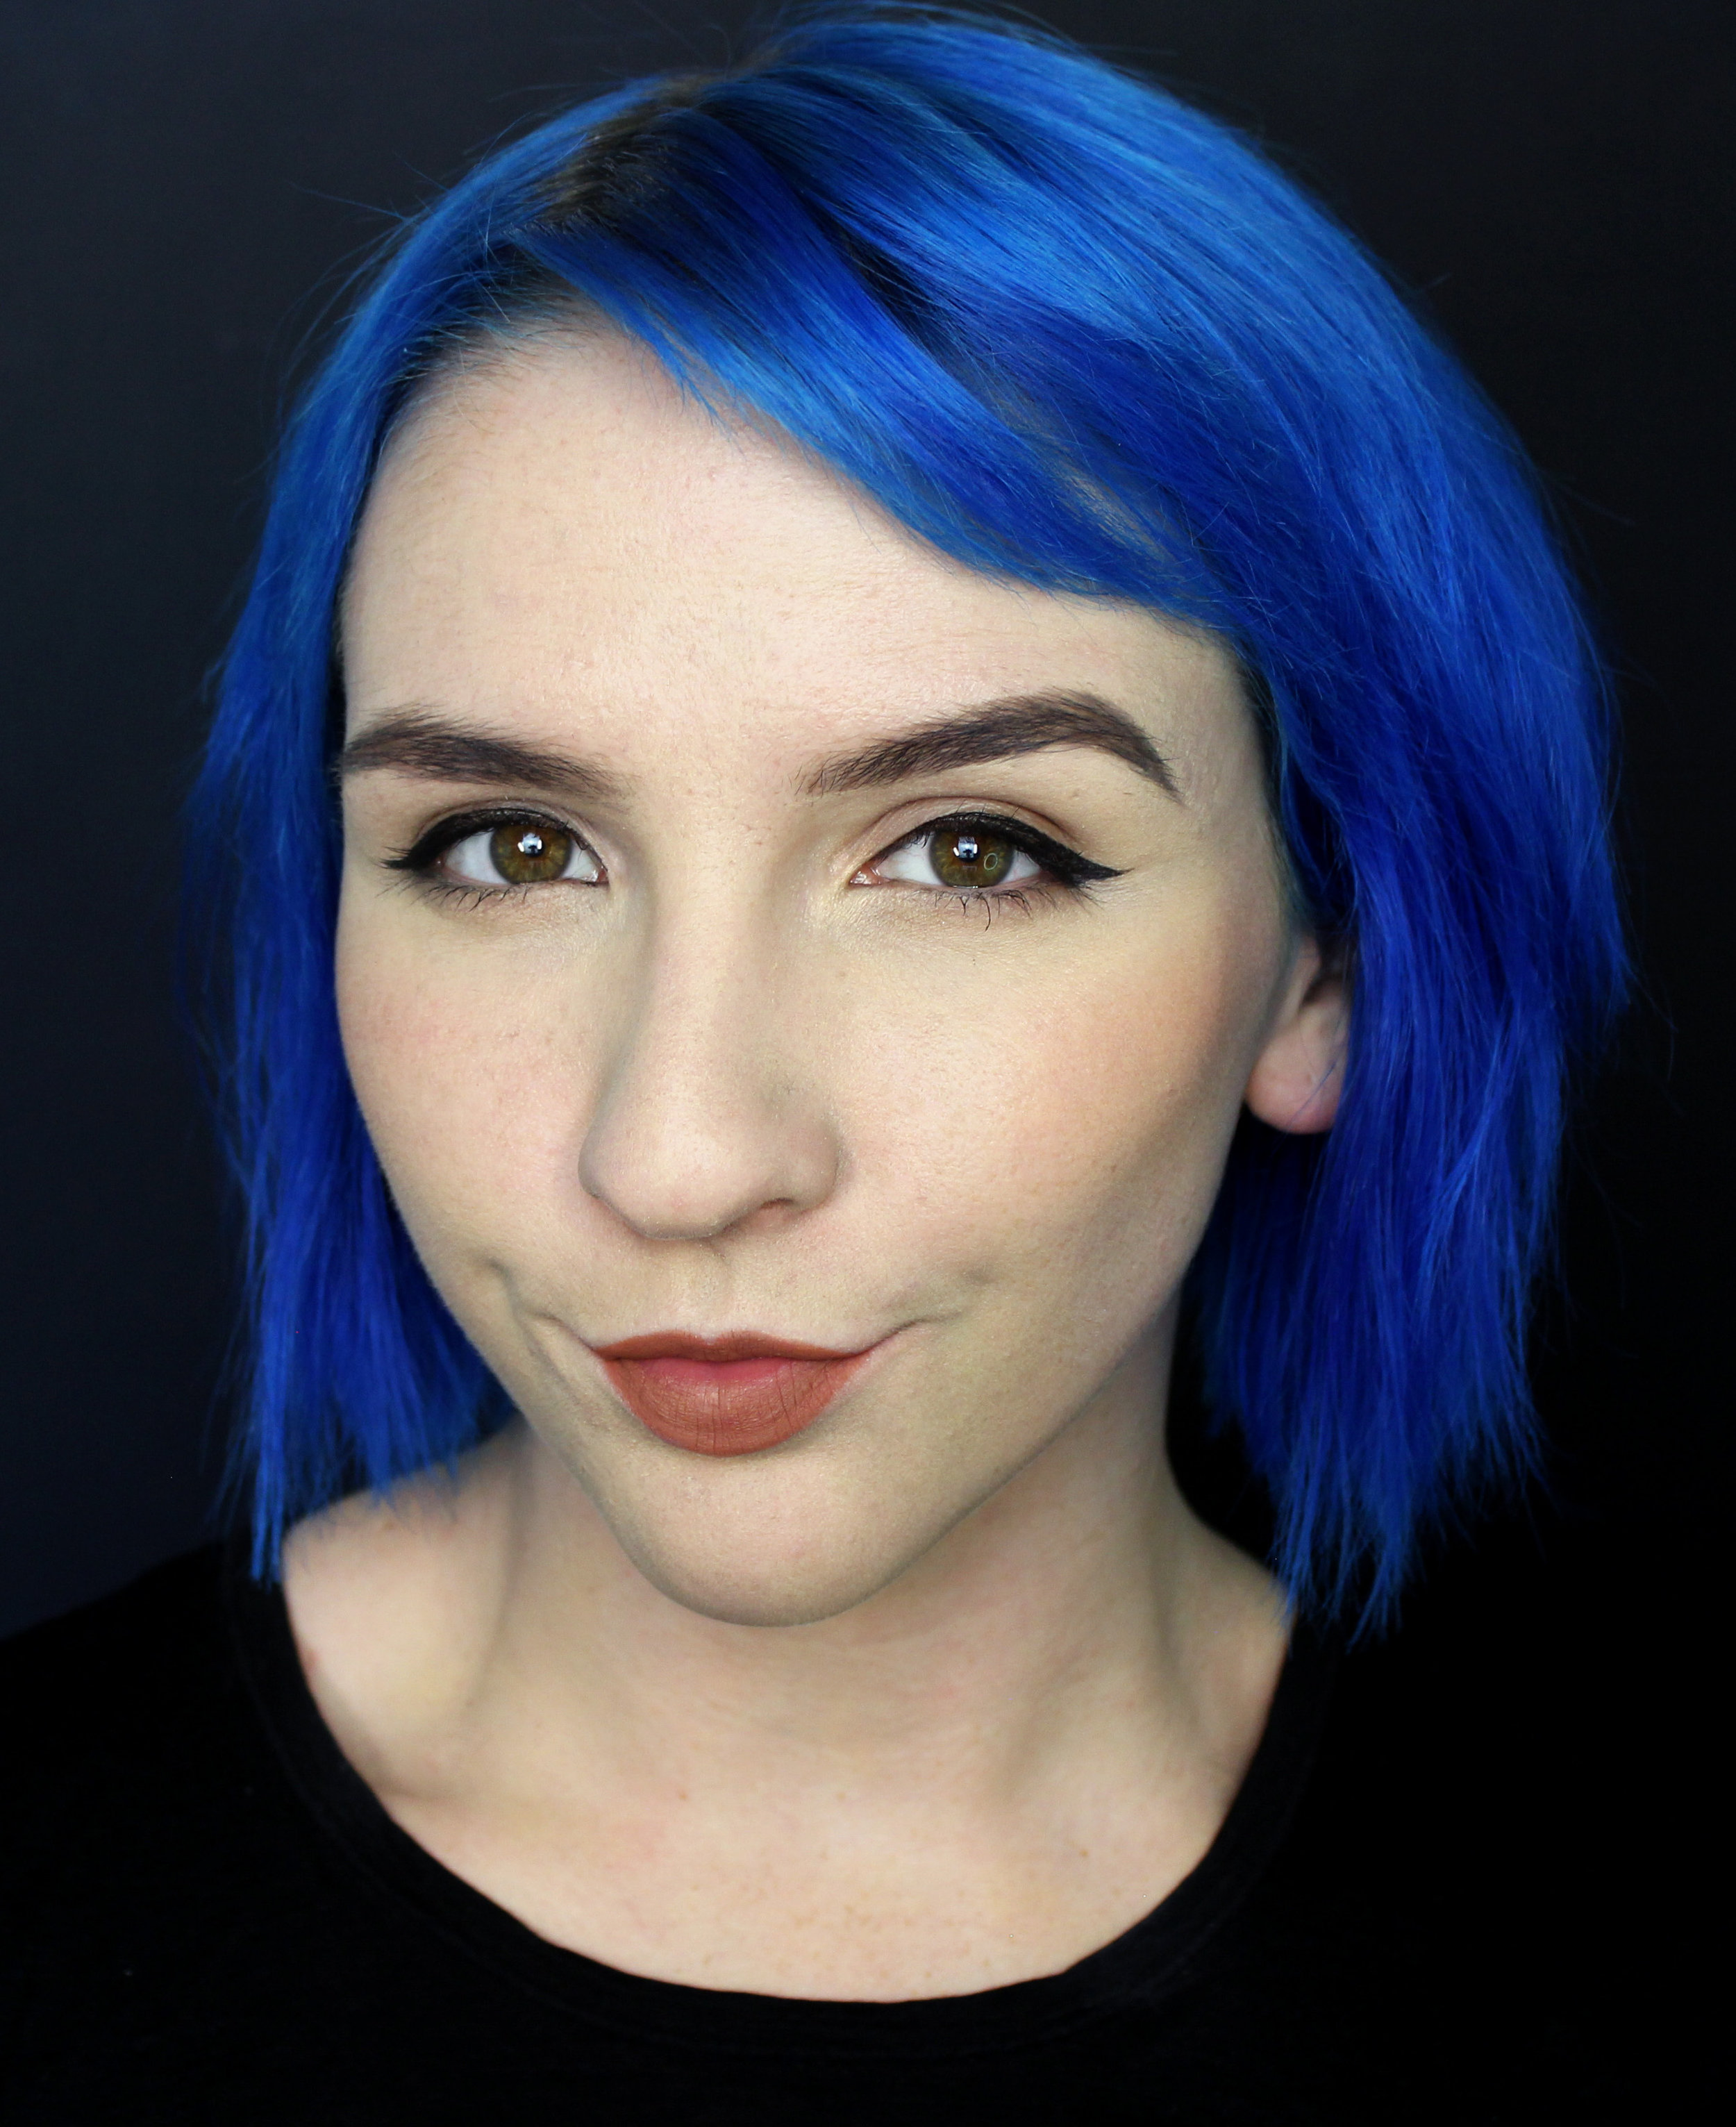 Georgina Ryland Headshot Blue Hair crop.jpg